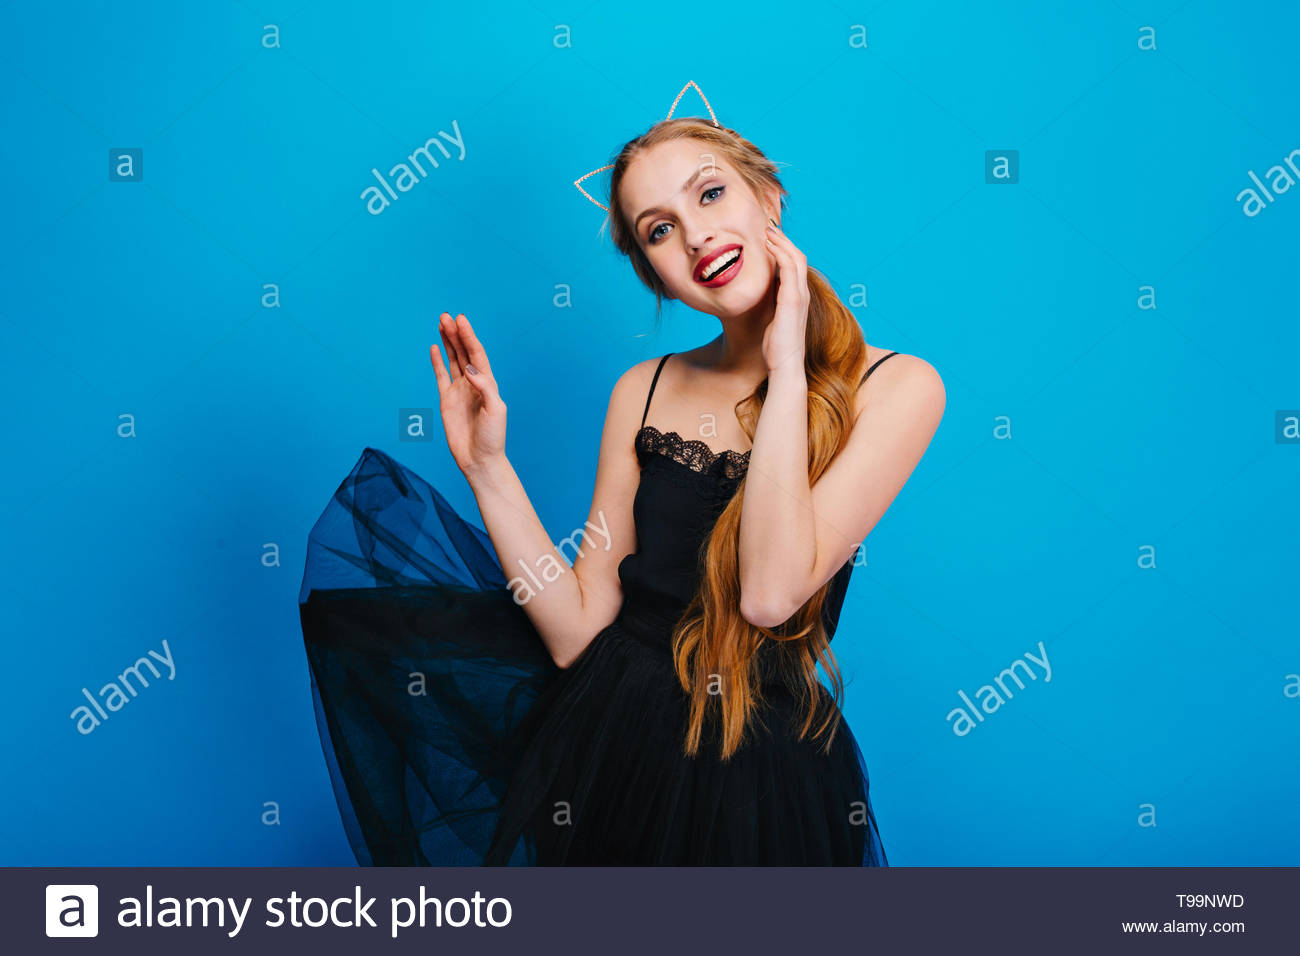 Young pretty woman with beautiful smile, fluttering black dress, posing on blue background. She has long hair, wearing headband with cat ears, nice make up with red lipstick. - Stock Image